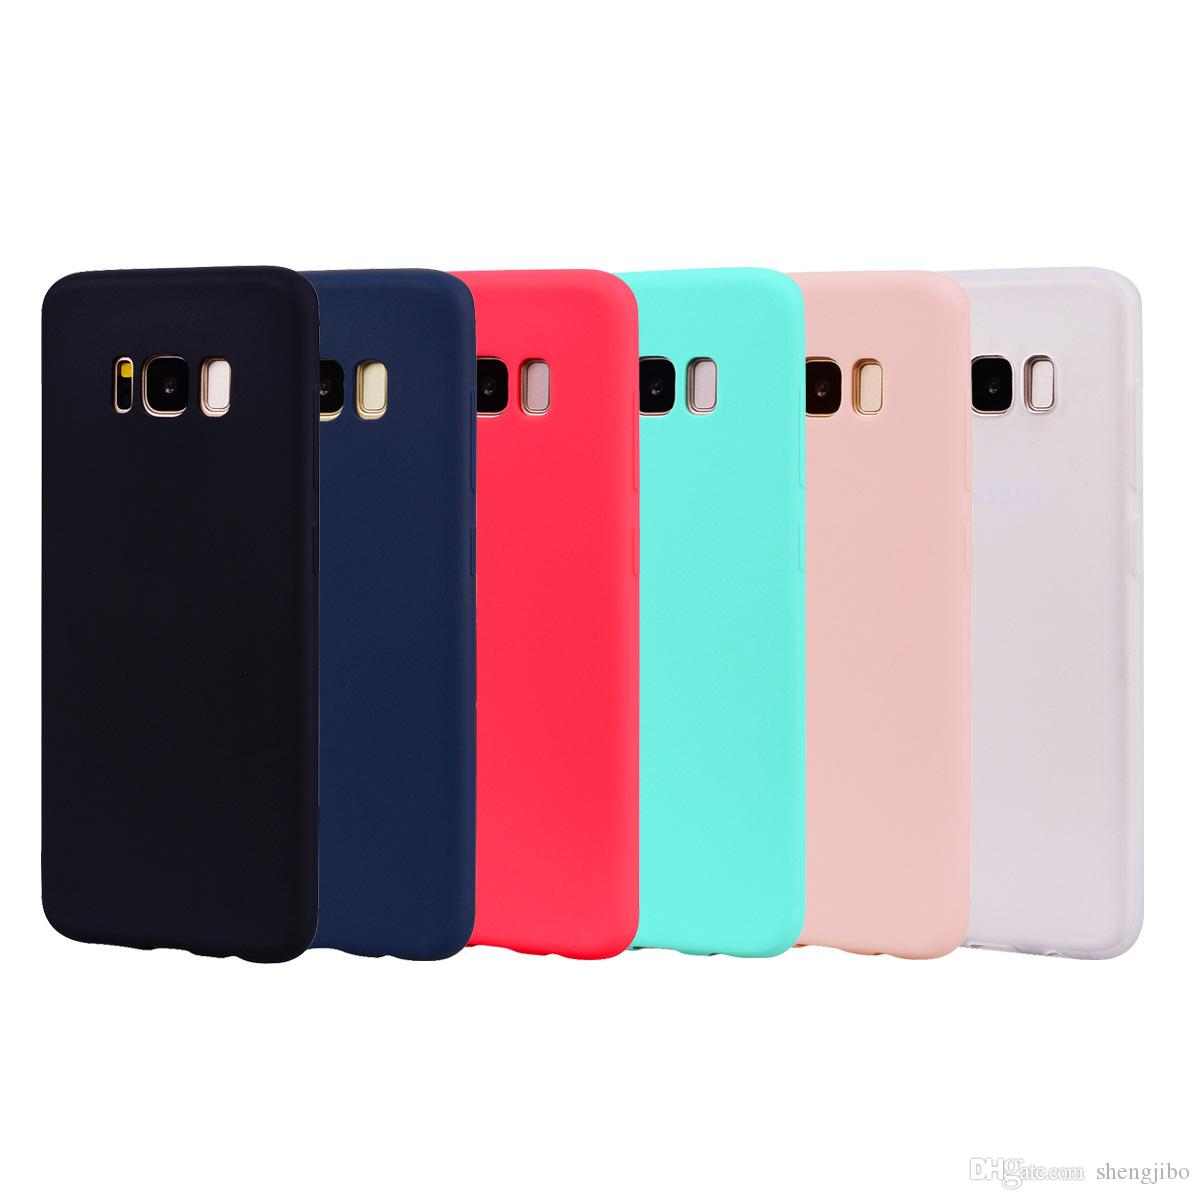 reputable site 35606 6e9a5 Silicone Case For Samsung Galaxy S6 S7 Edge S8 Plus Phone Bag Case Rubber  Matte Cute Back Cover For Samsung Galaxy A5 2017